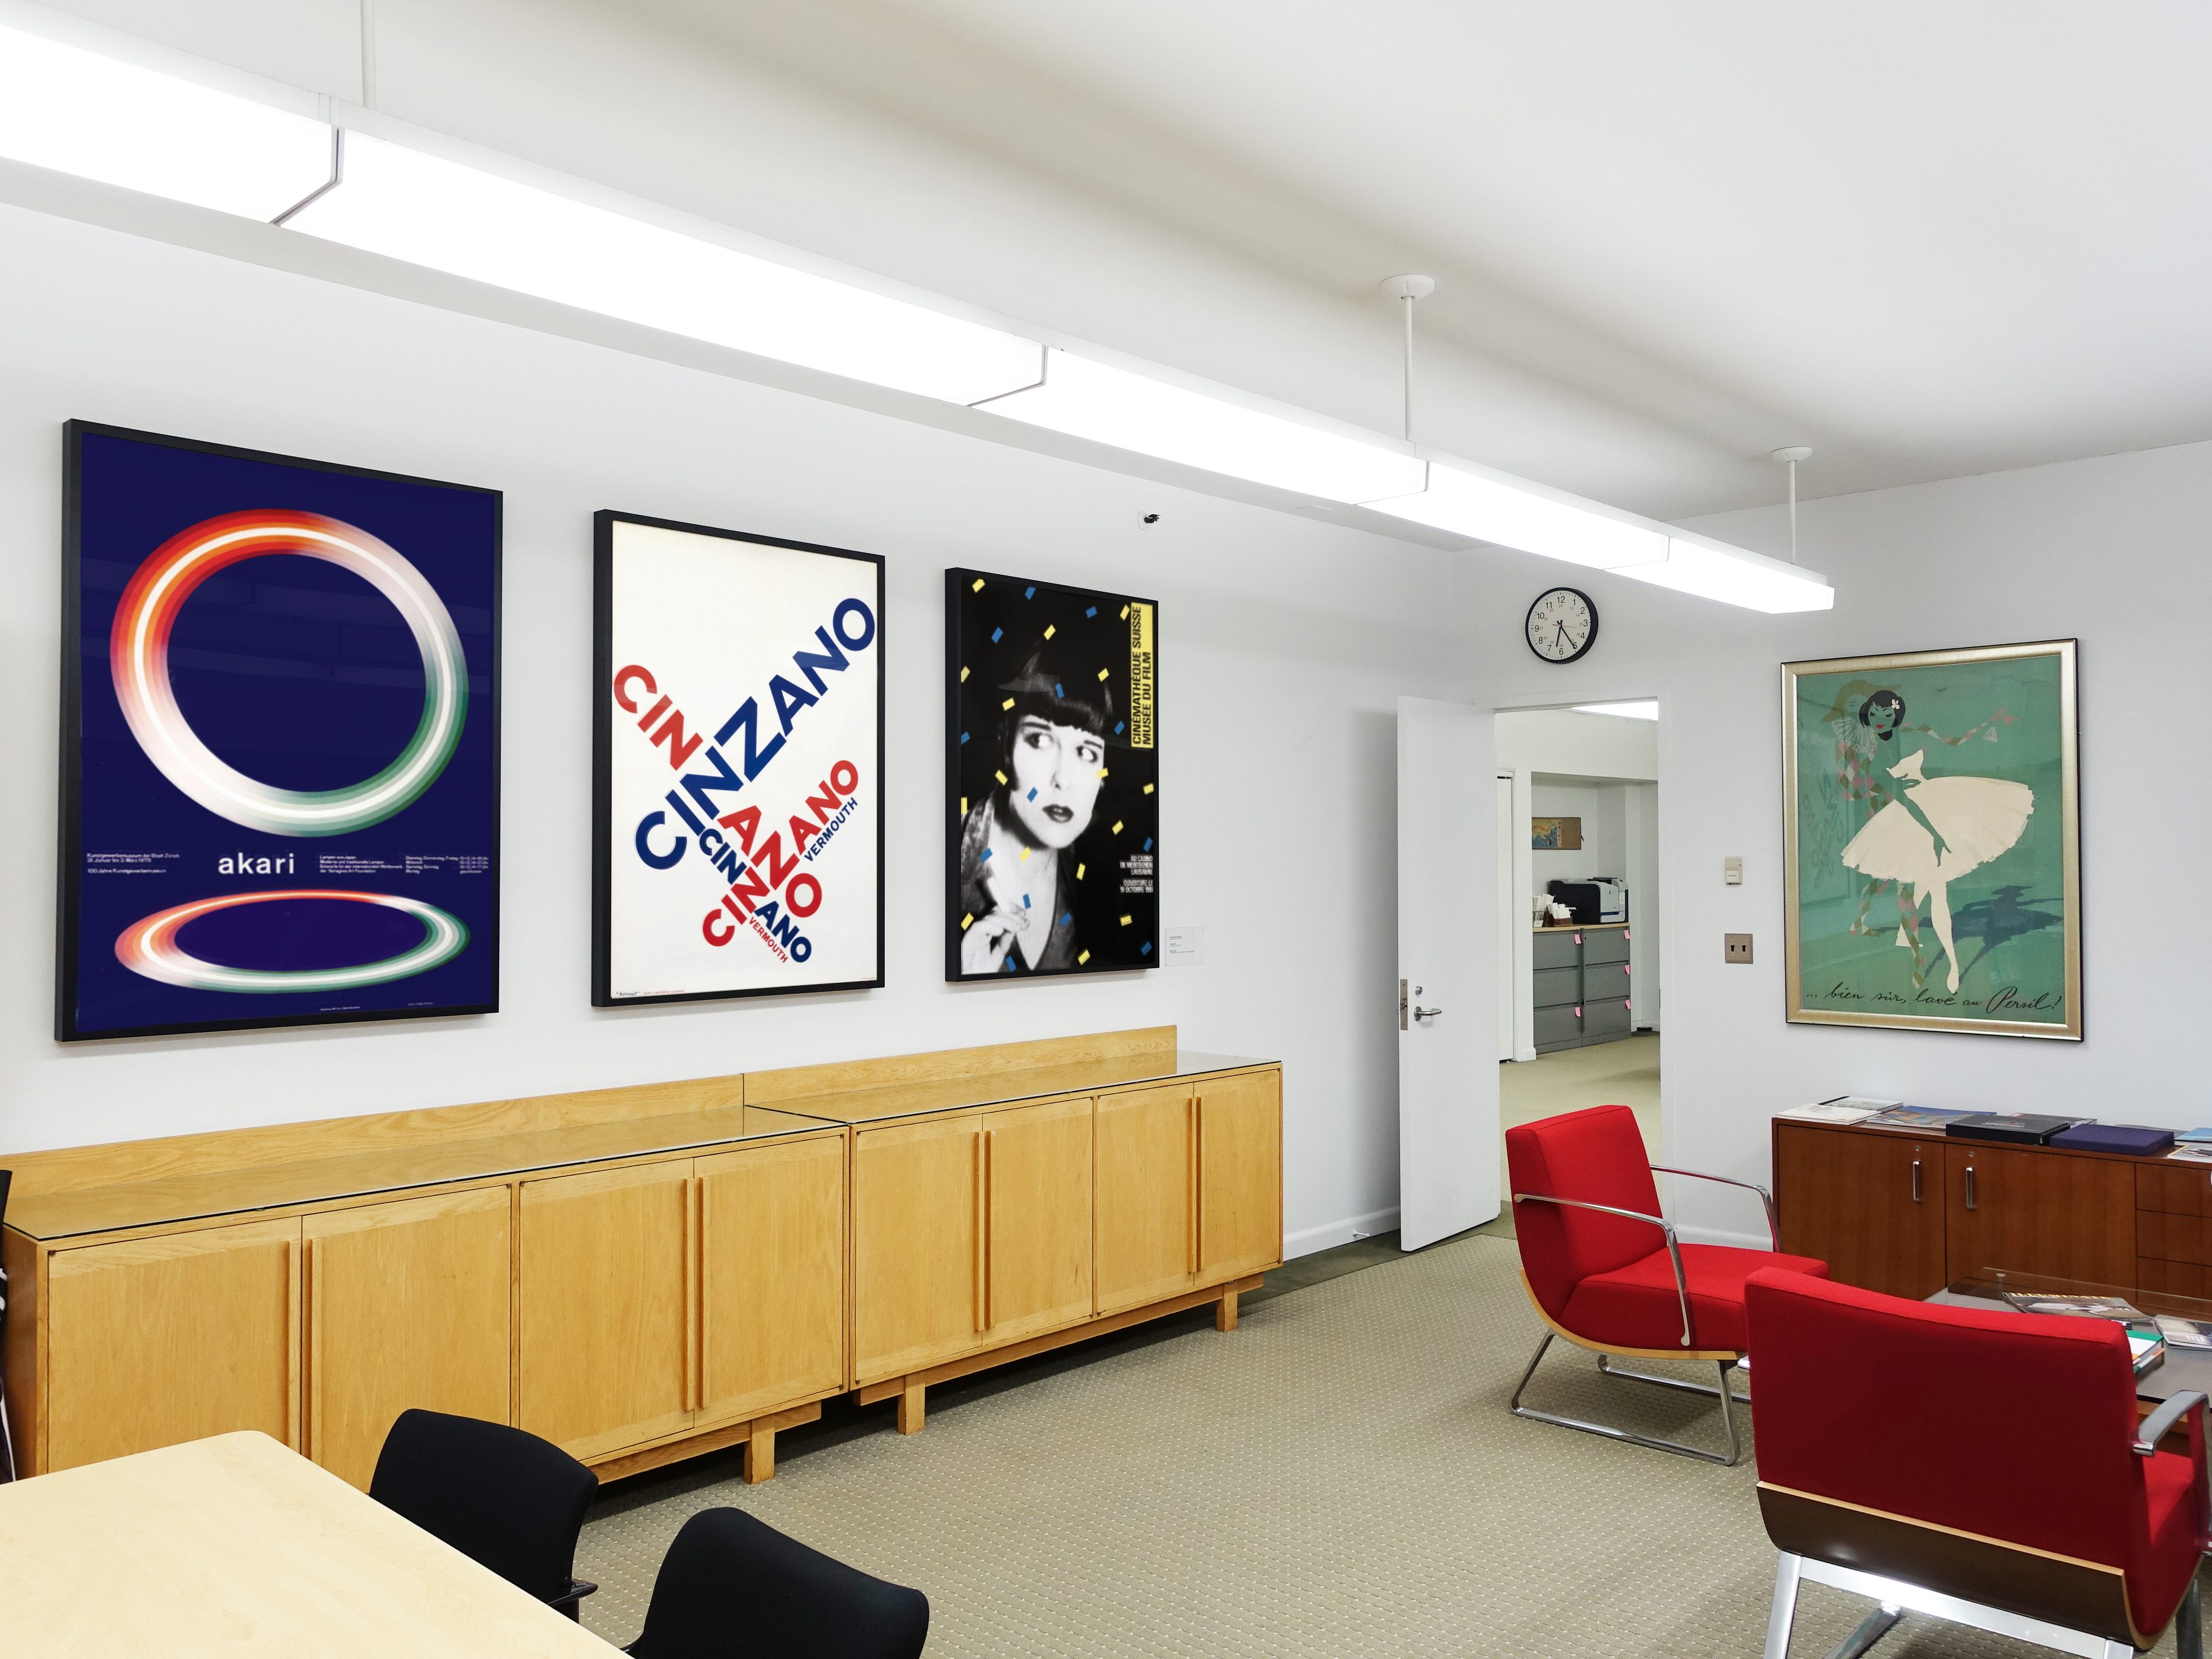 wide view of office and chairs, four posters on walls; blue, red, yellow, green